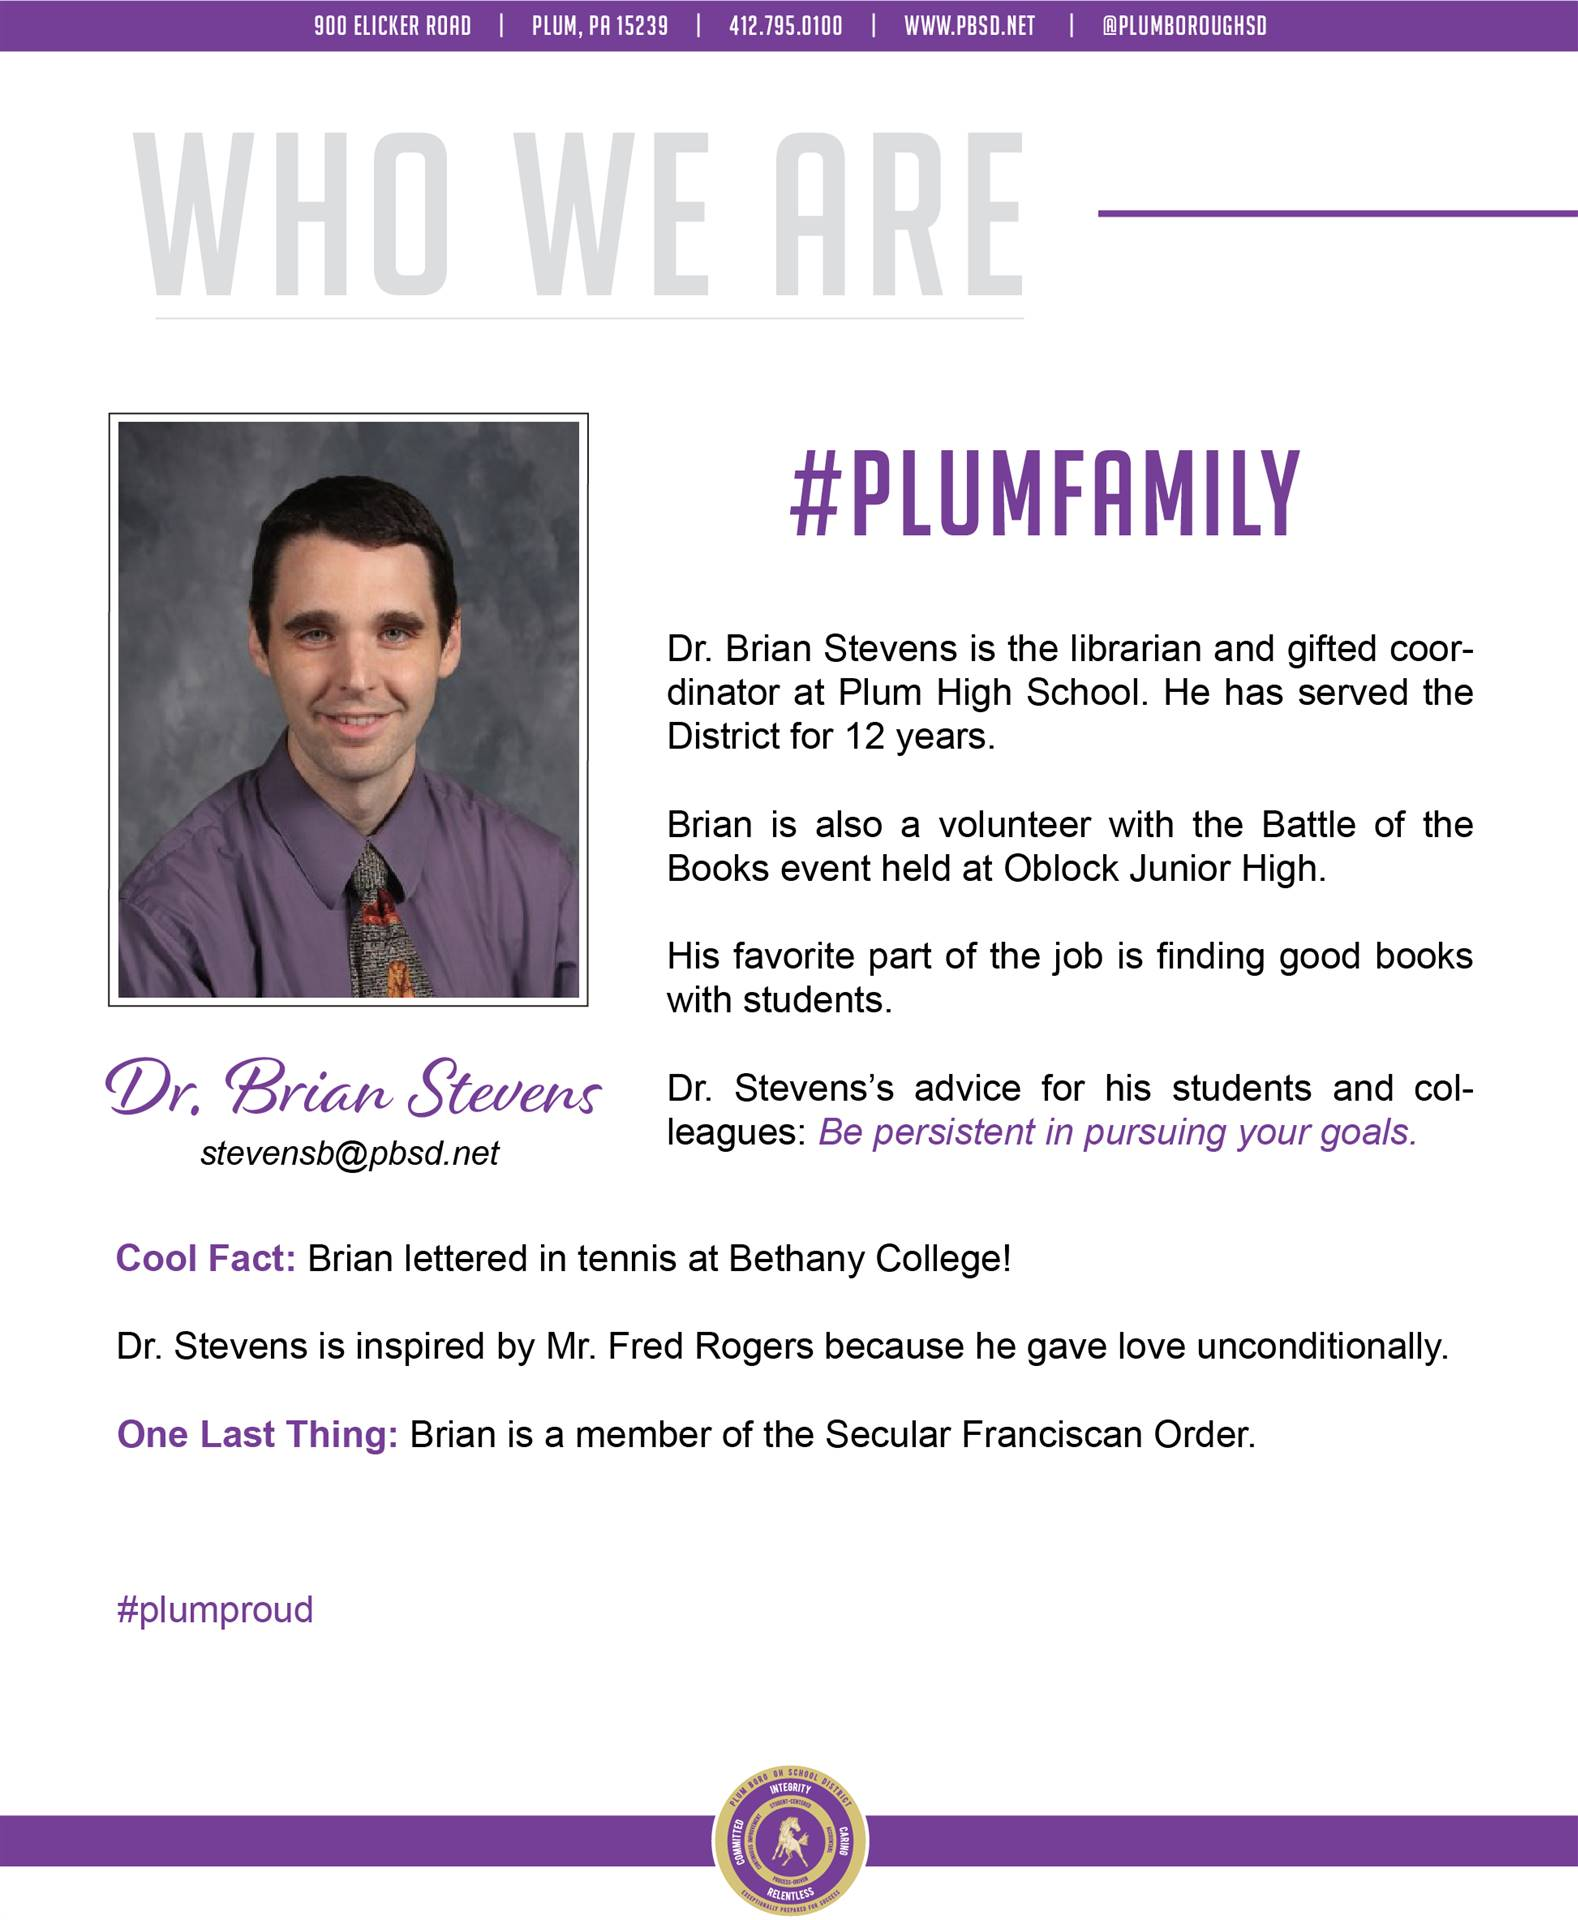 Who We Are Wednesday features Dr. Brian Stevens.